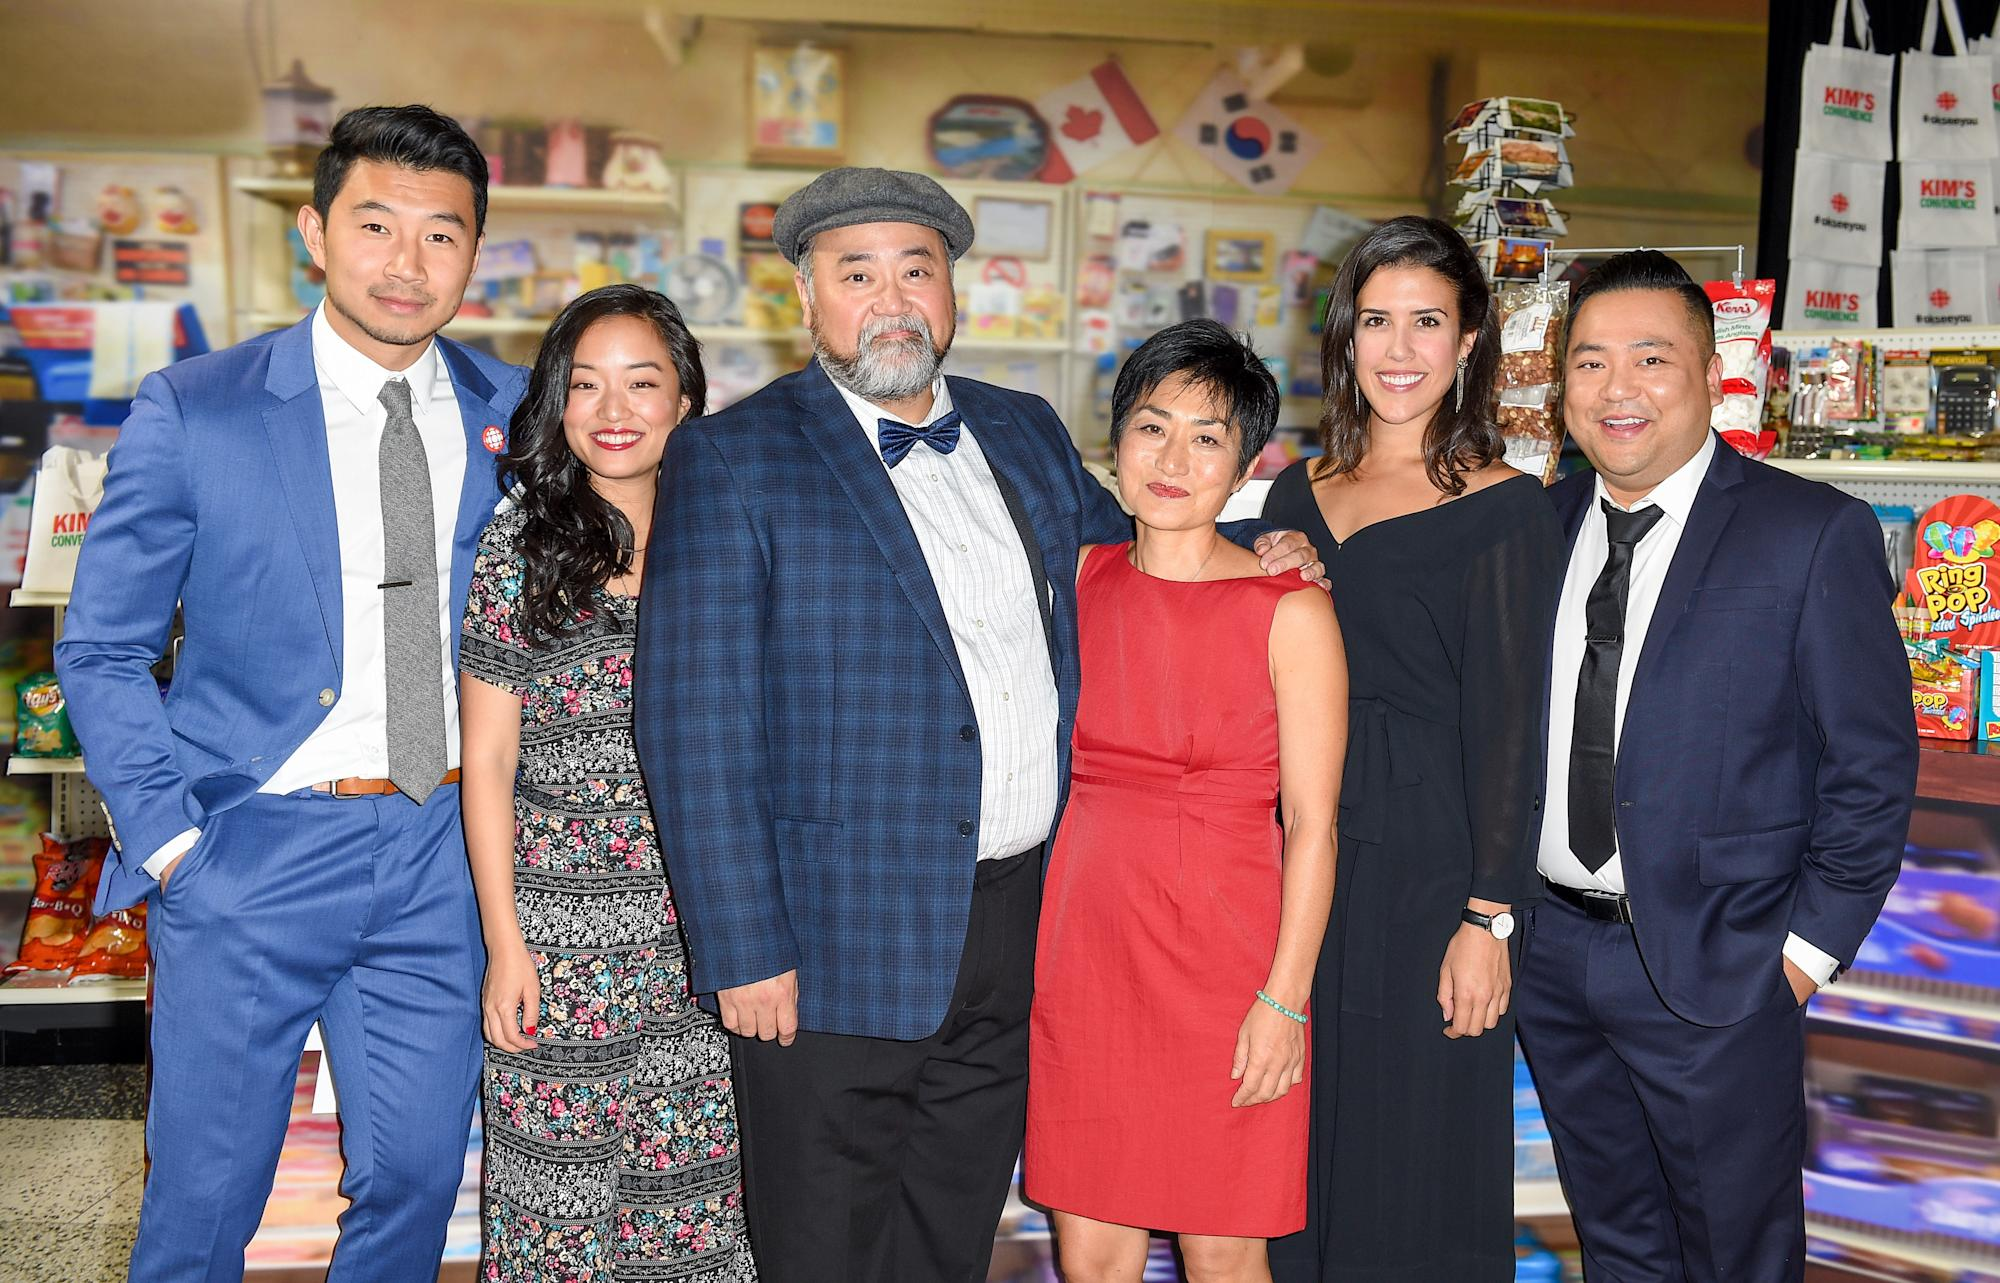 'Kim's Convenience' coming to abrupt end: Fans, stars, react as show says 'OK See You'